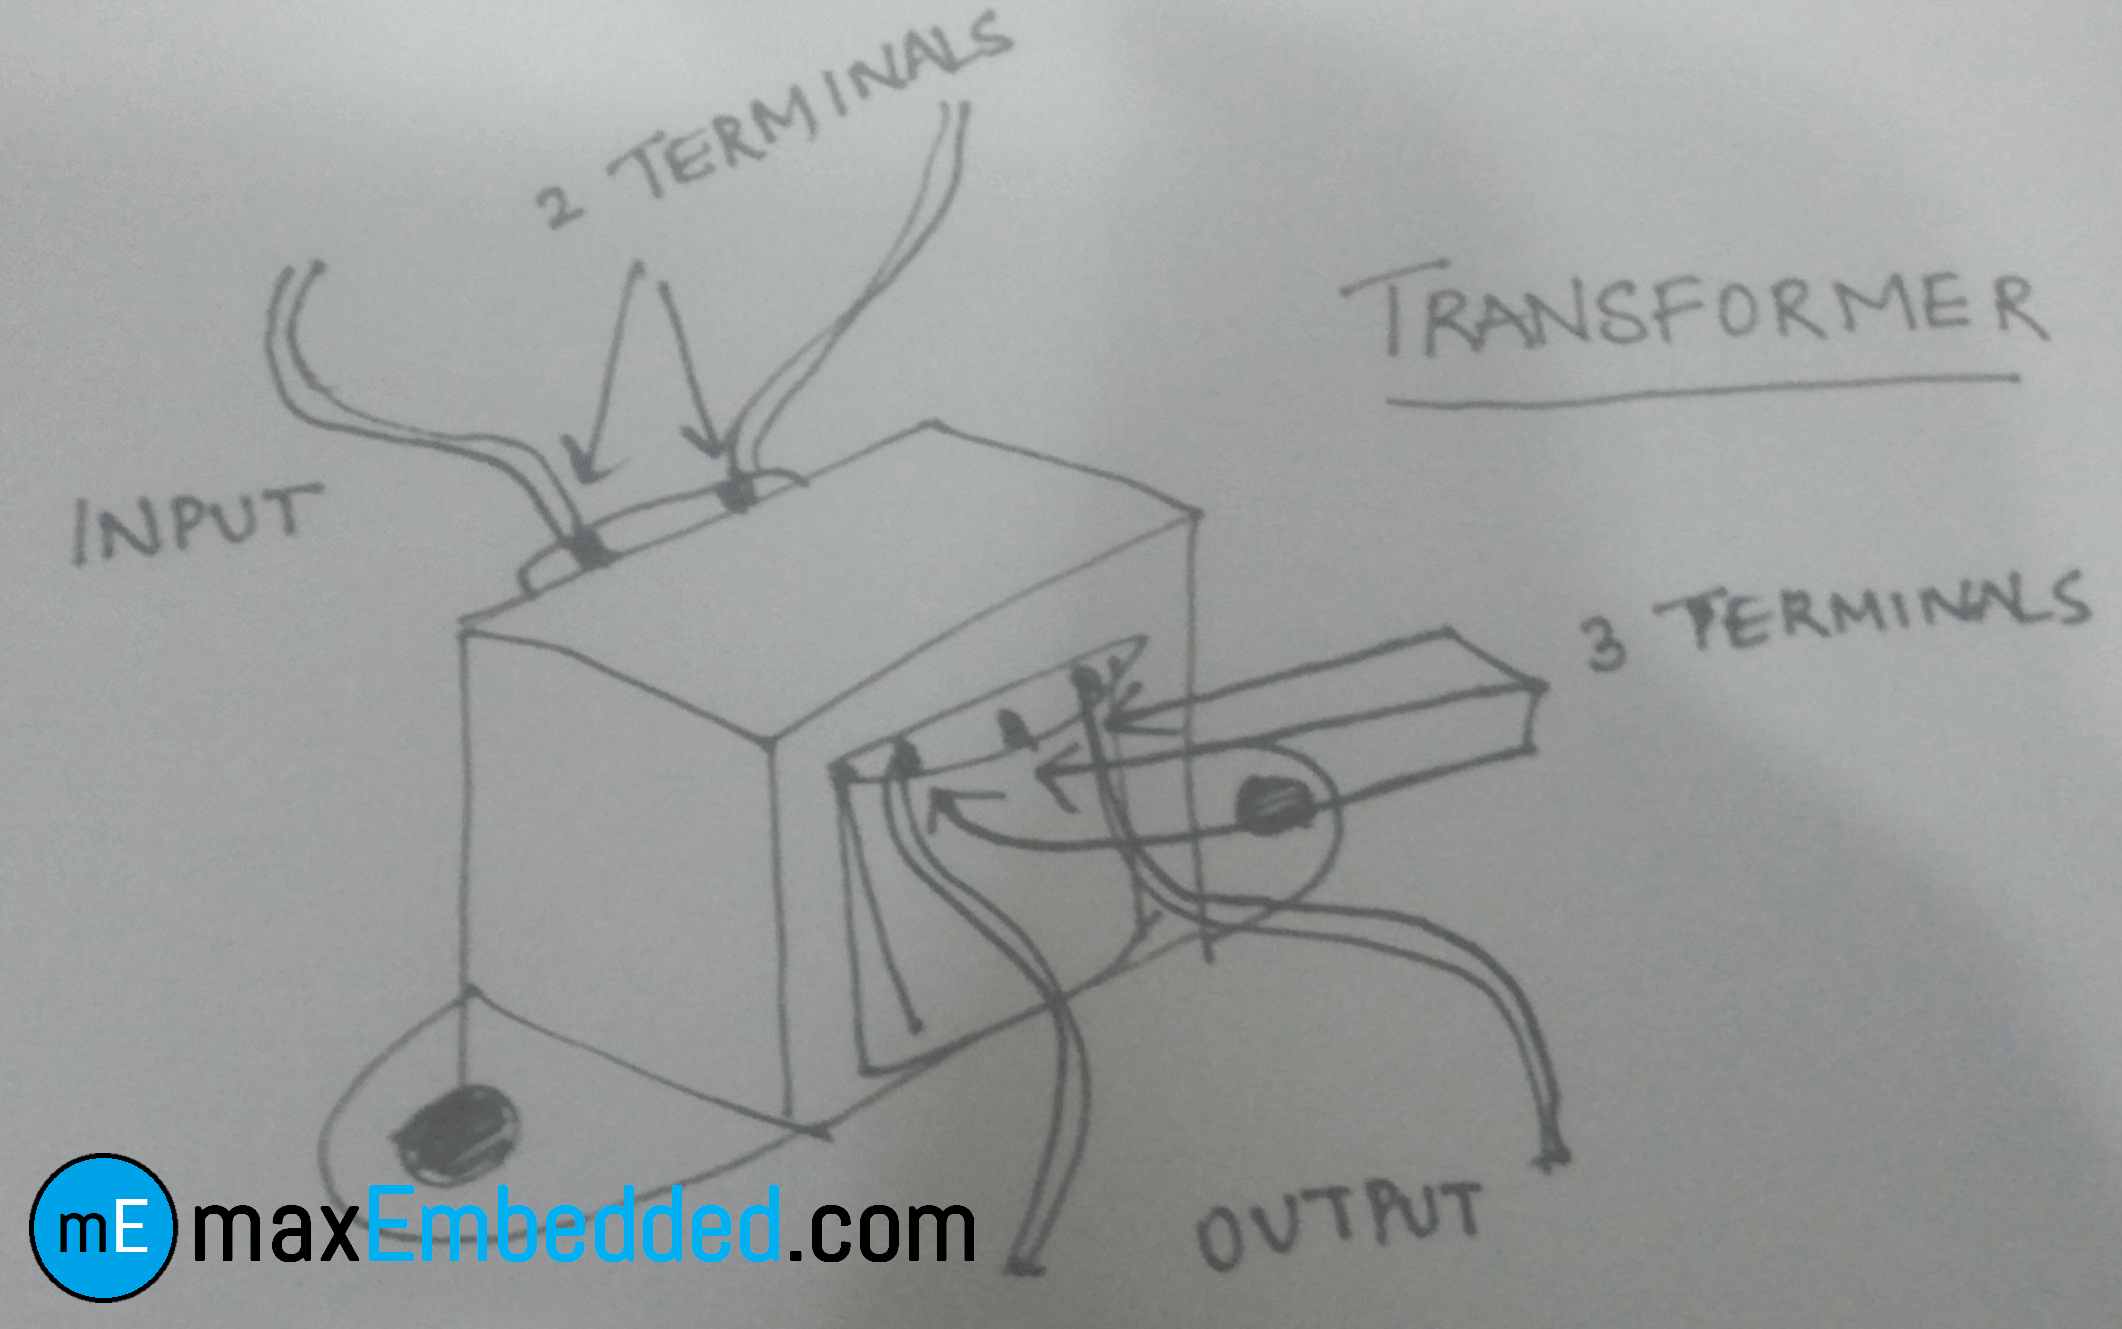 240 to 24 volt transformer wiring diagram 240 how to build your own power supply maxembedded on 240 to 24 volt transformer wiring diagram